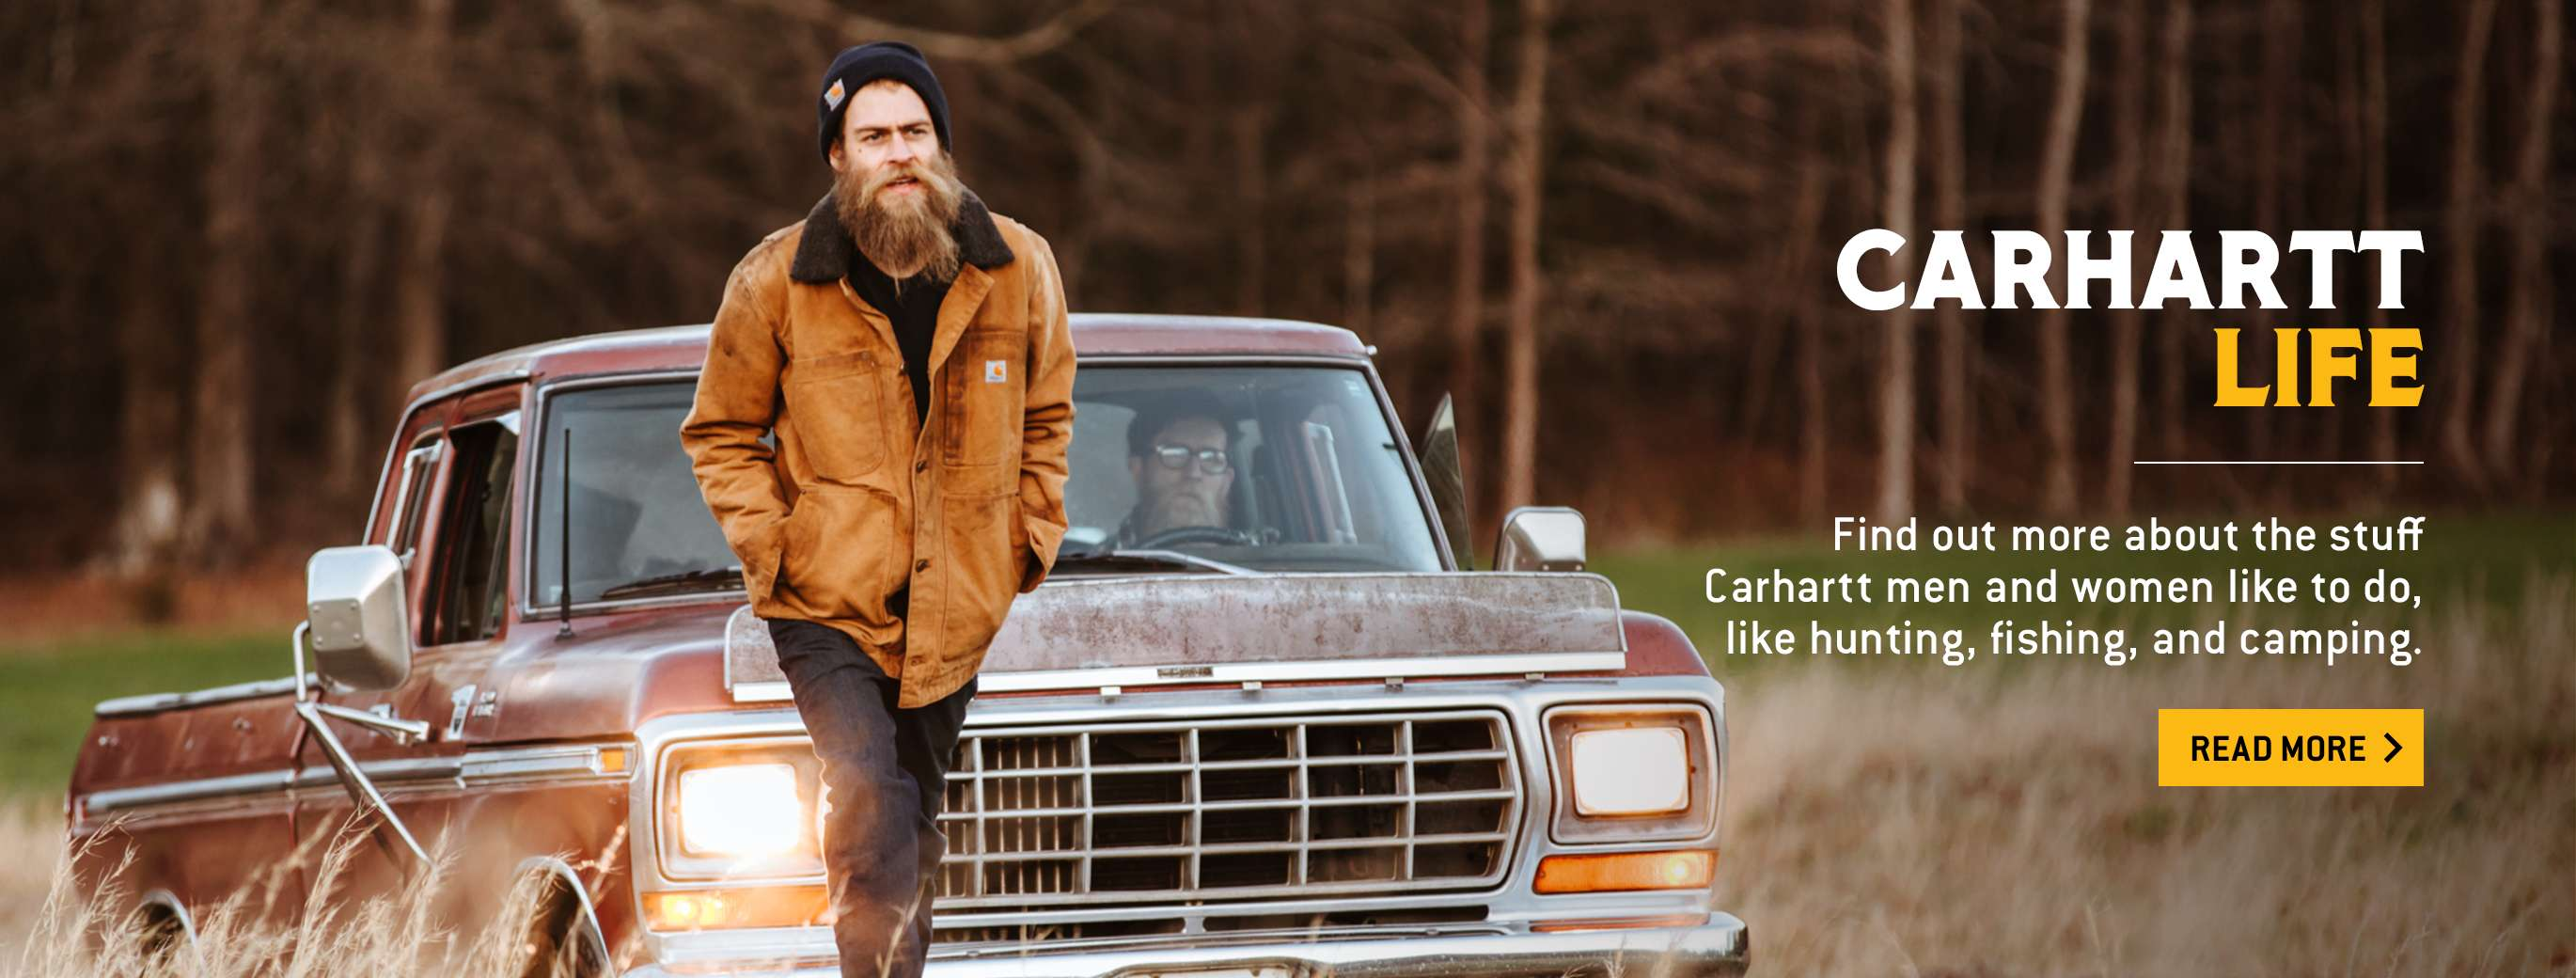 carhartt life. find out more about the stuff carhartt men and women like to do, like hunting, fishing, and camping. read more